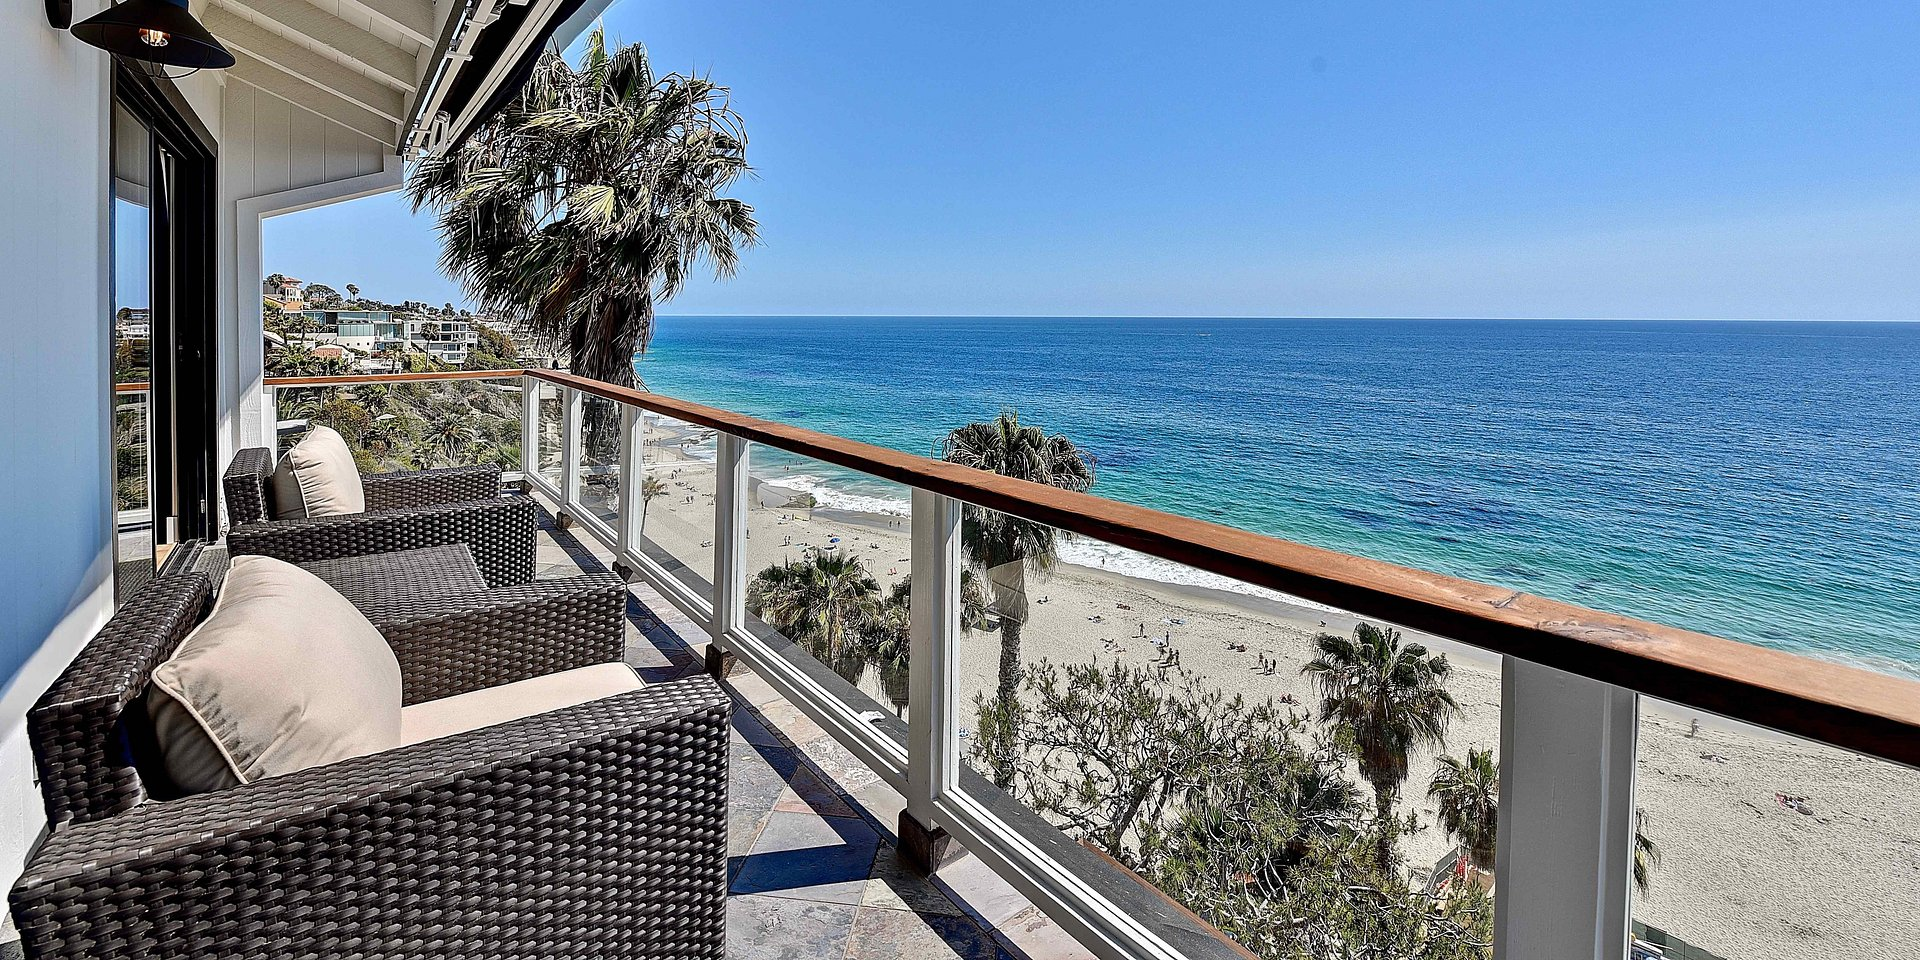 Coldwell Banker Realty Lists an Oceanfront Laguna Beach Property for $5.569 Million